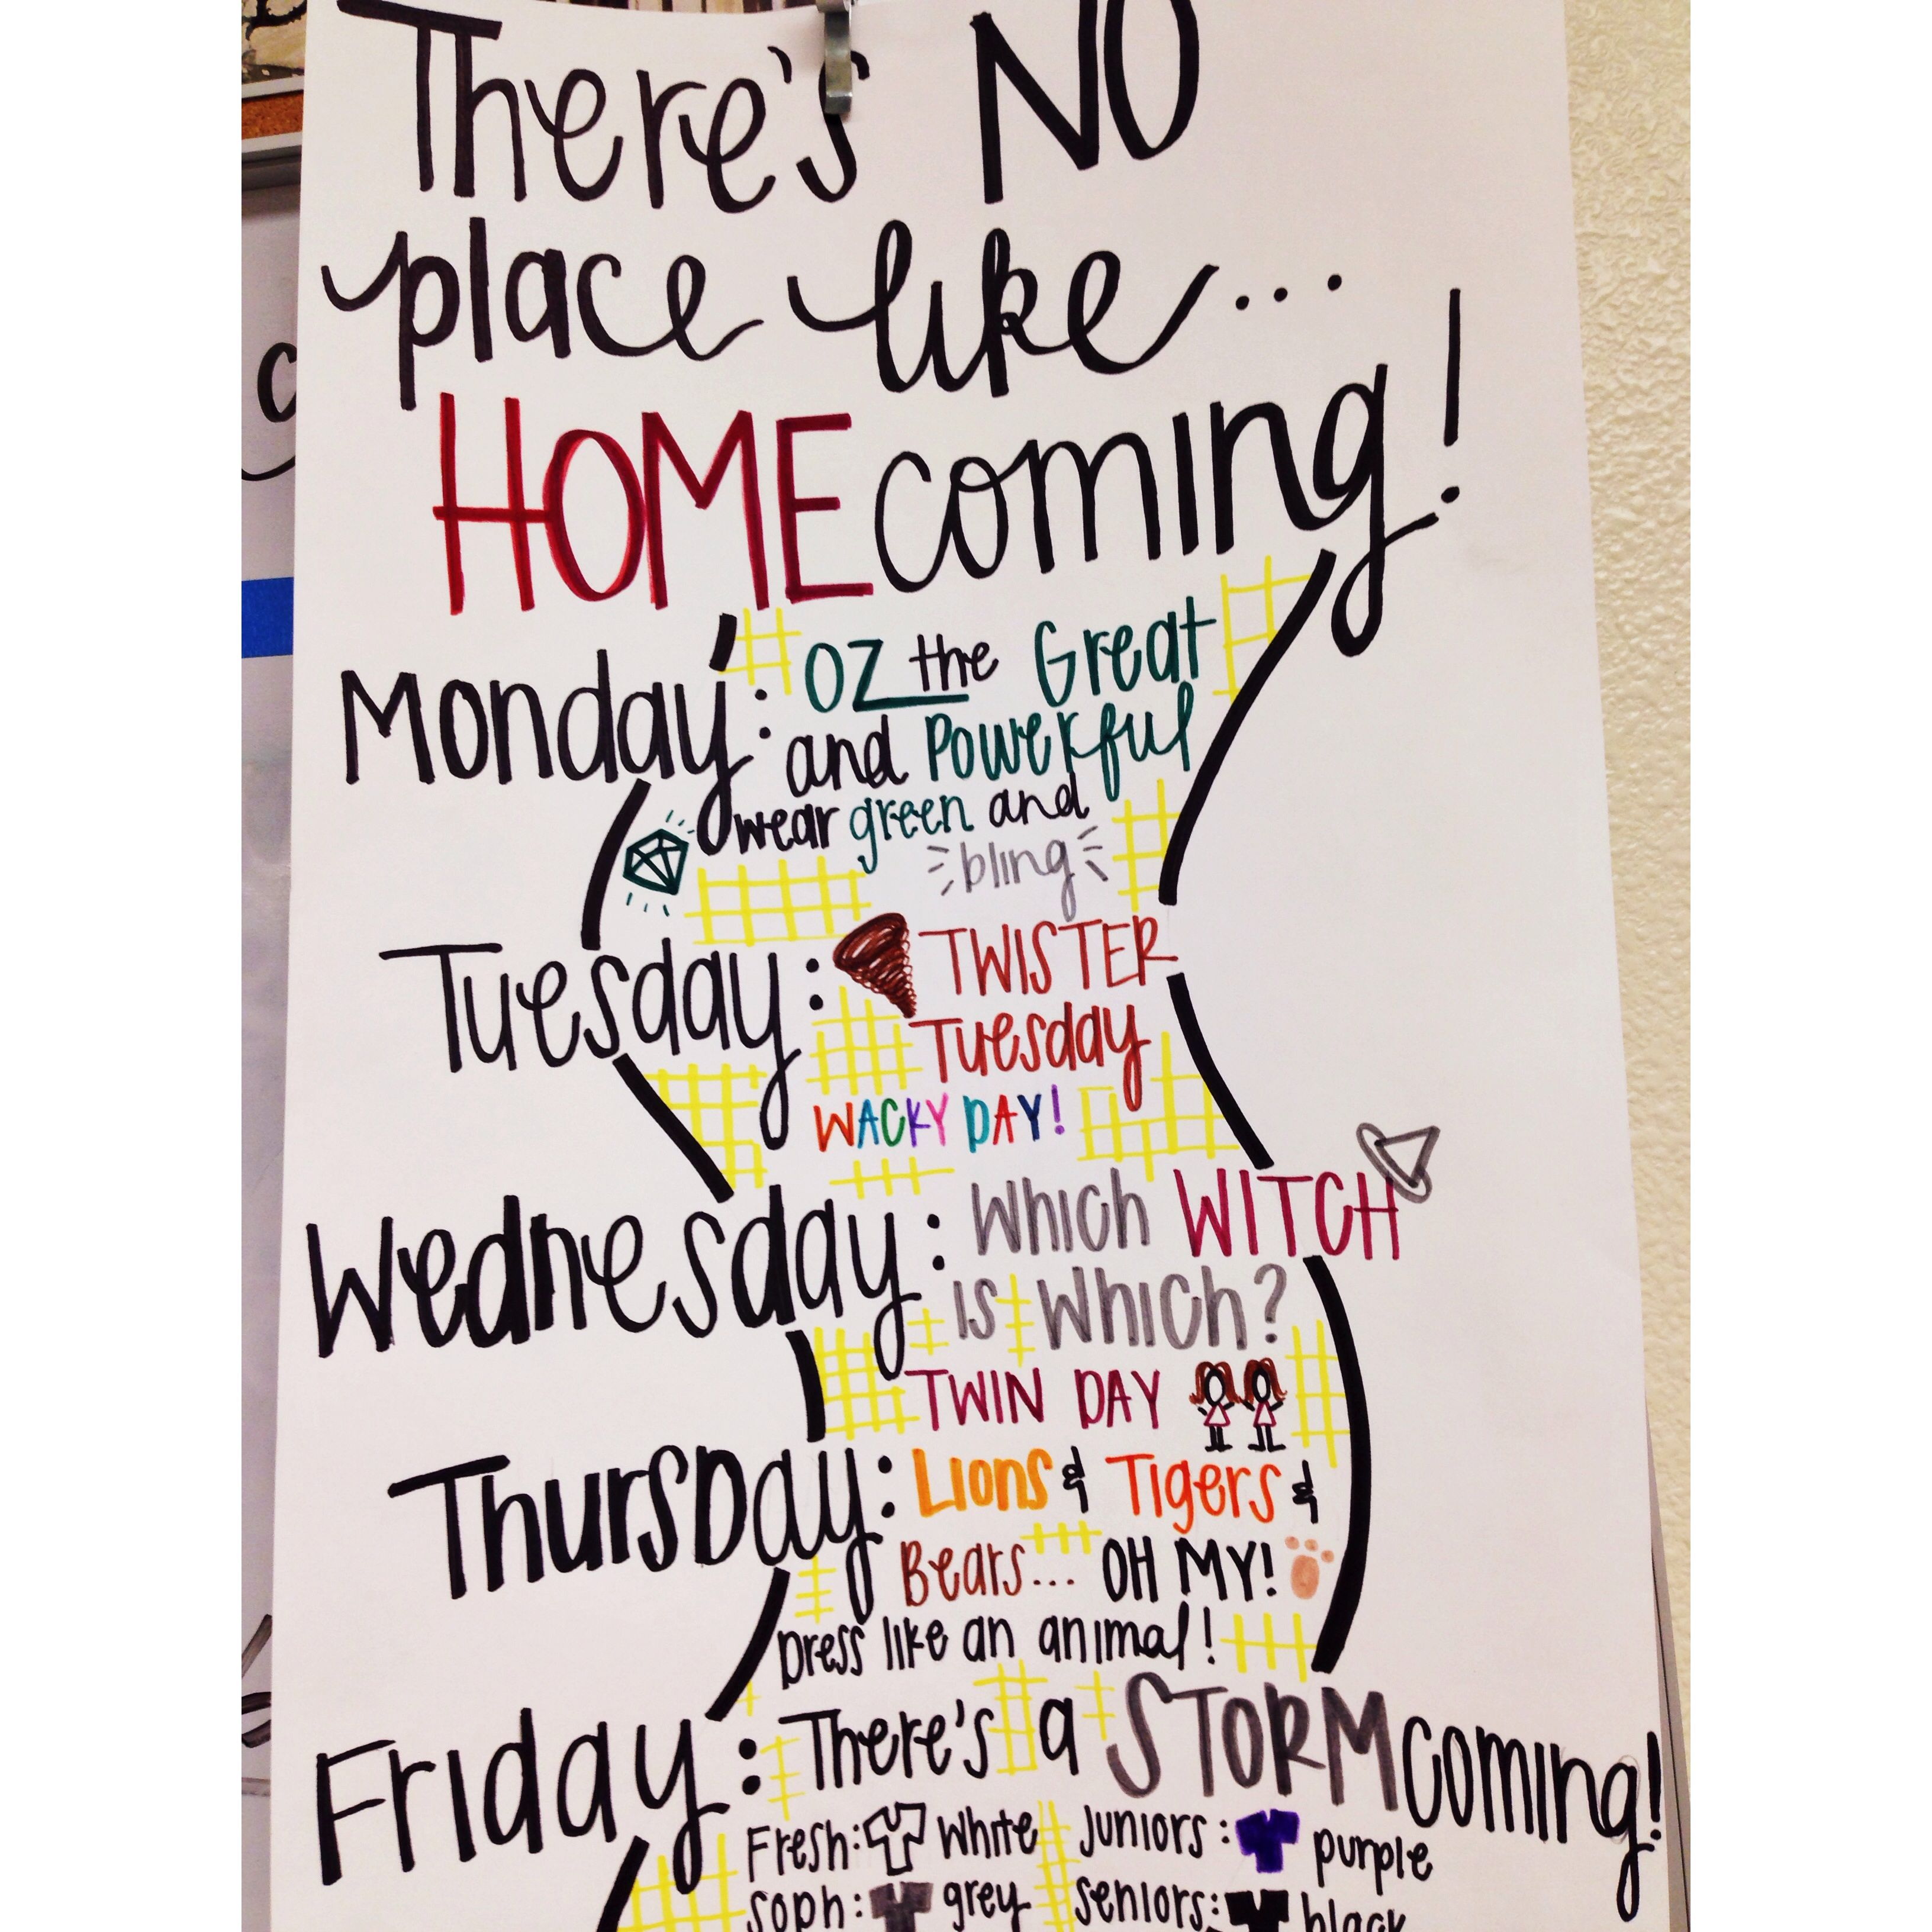 Wizard Of Oz homecoming theme idea | Student Council | Pinterest